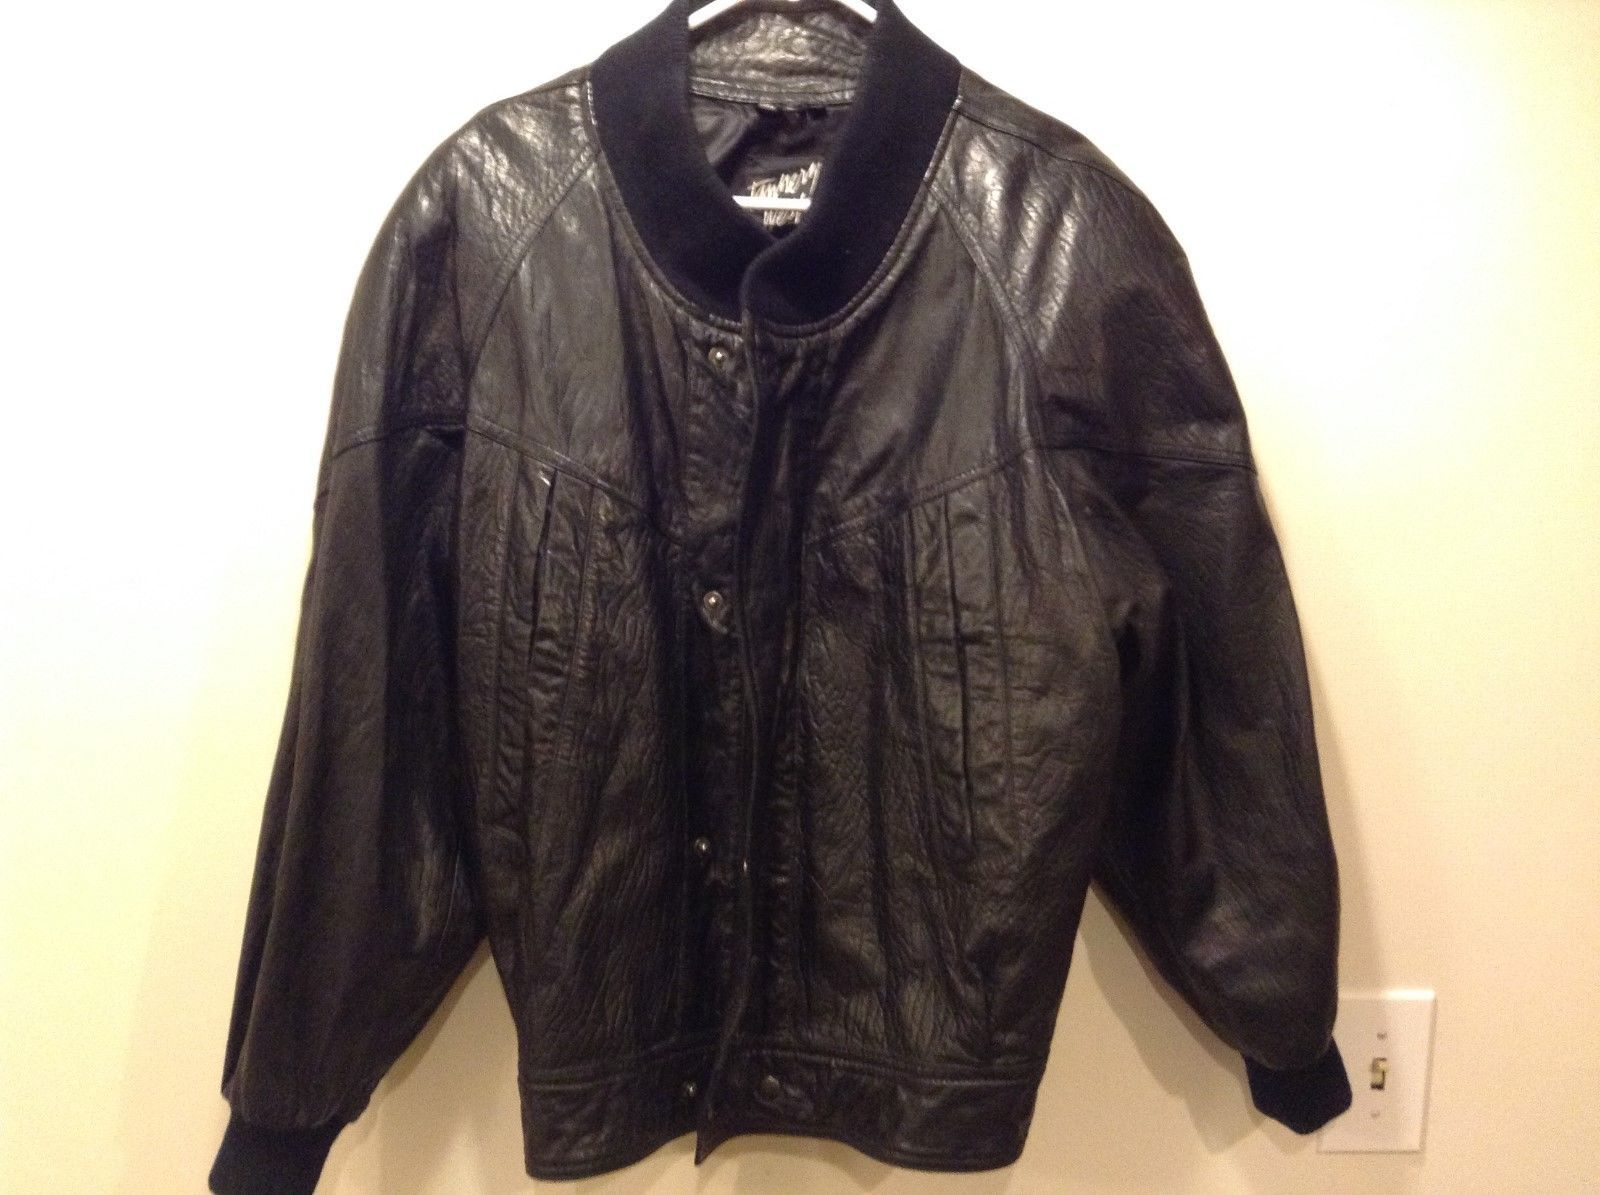 Tannery West Men's Black Leather Jacket Sz M